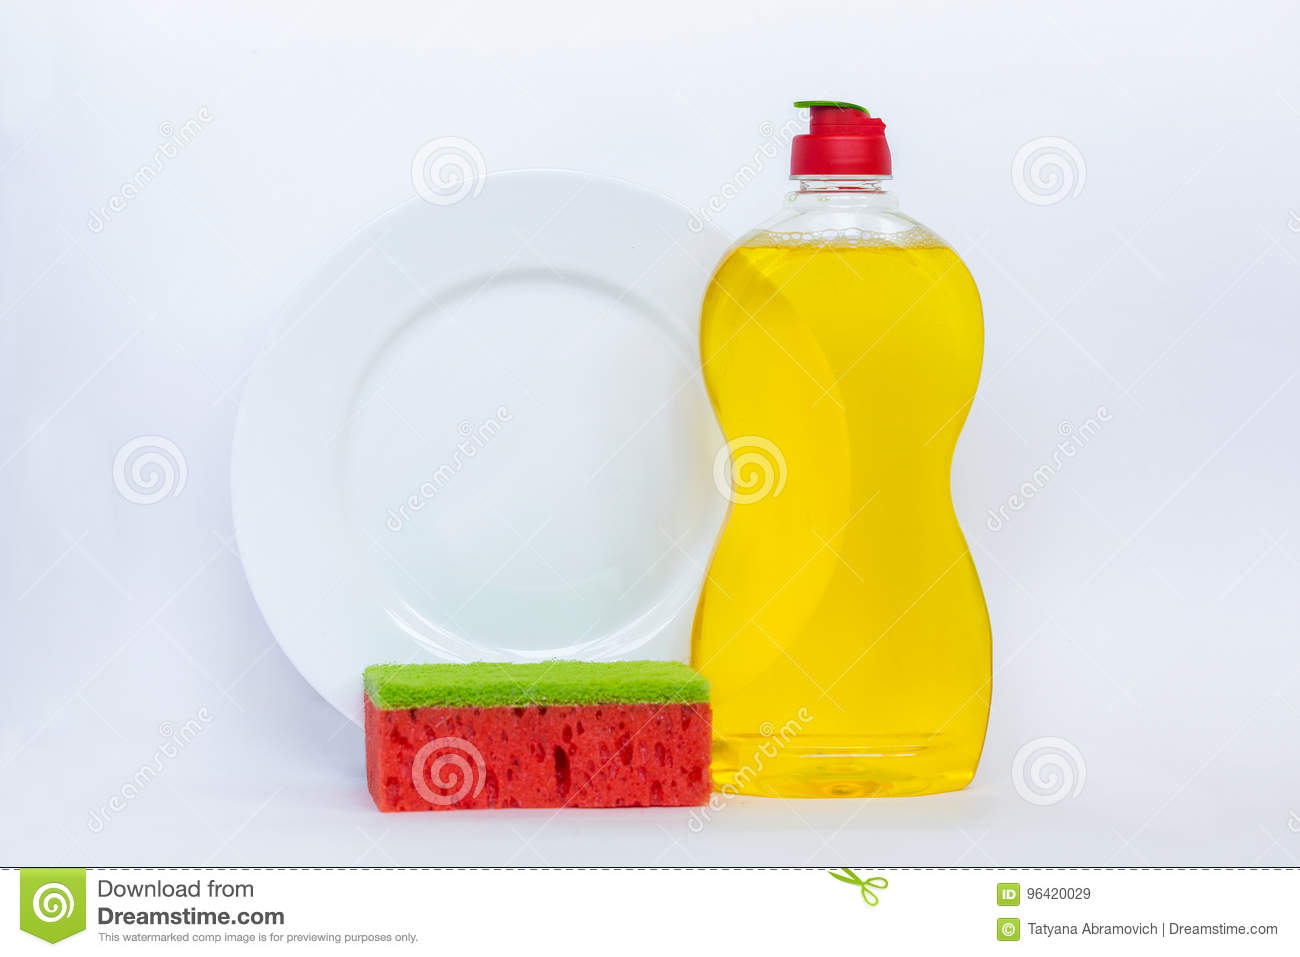 Kitchenware washing yellow liquid, clean bottle, clean plate and